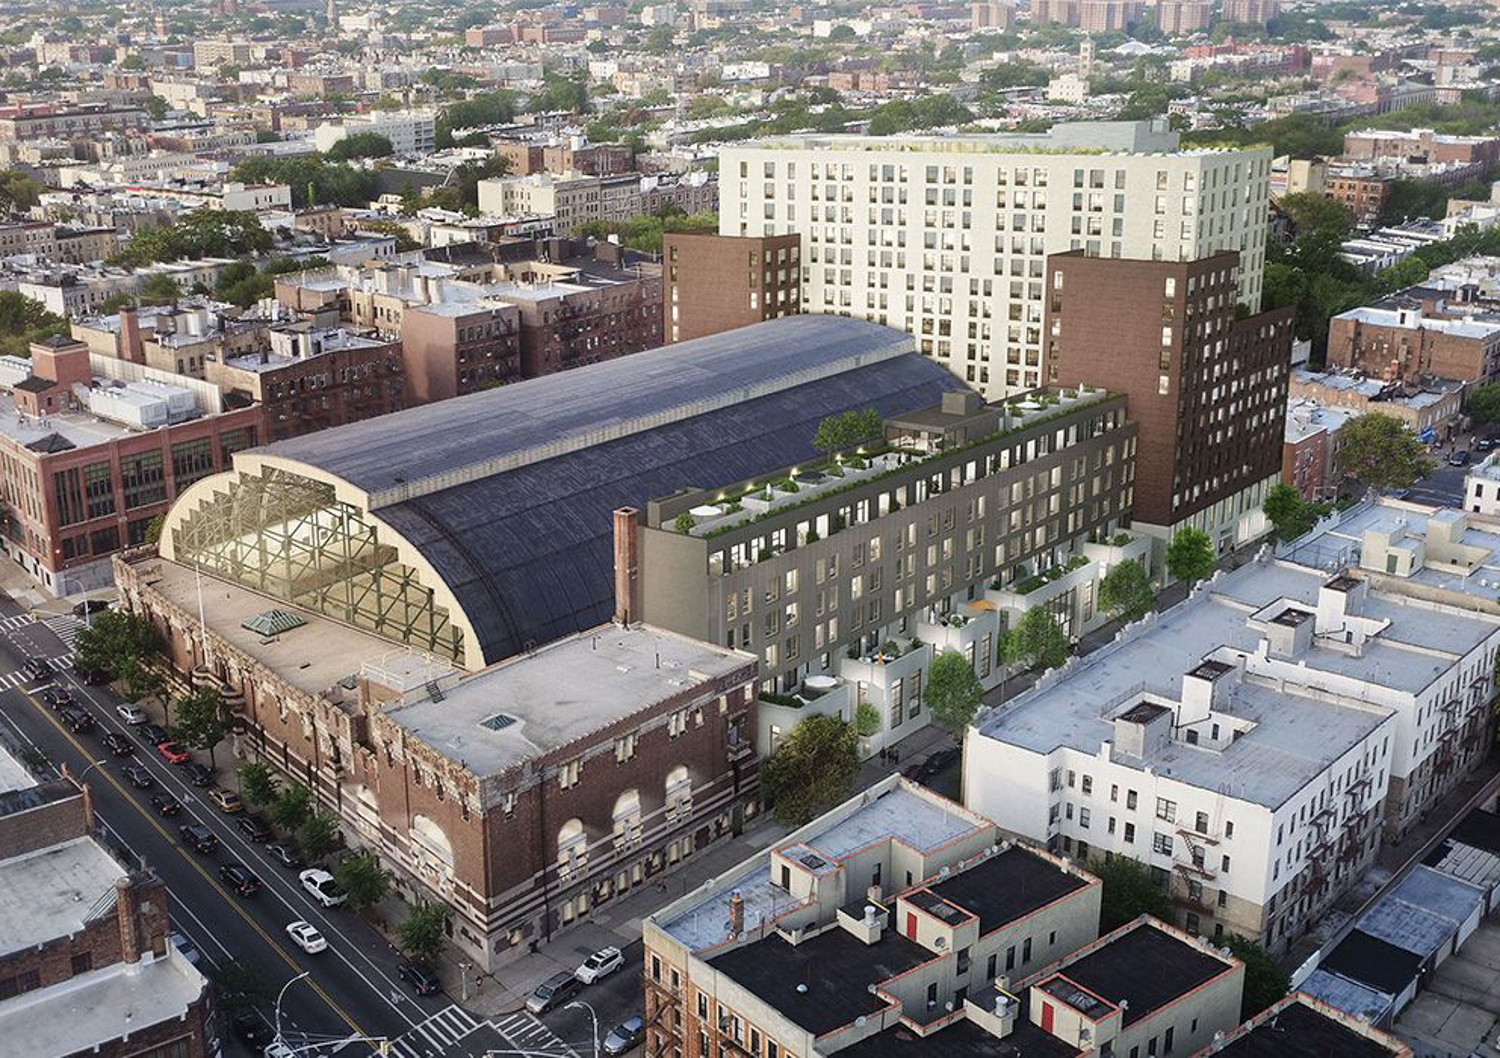 Overhead rendering of plans to redevelop Bedford Union Armory, courtesy BFC Partners